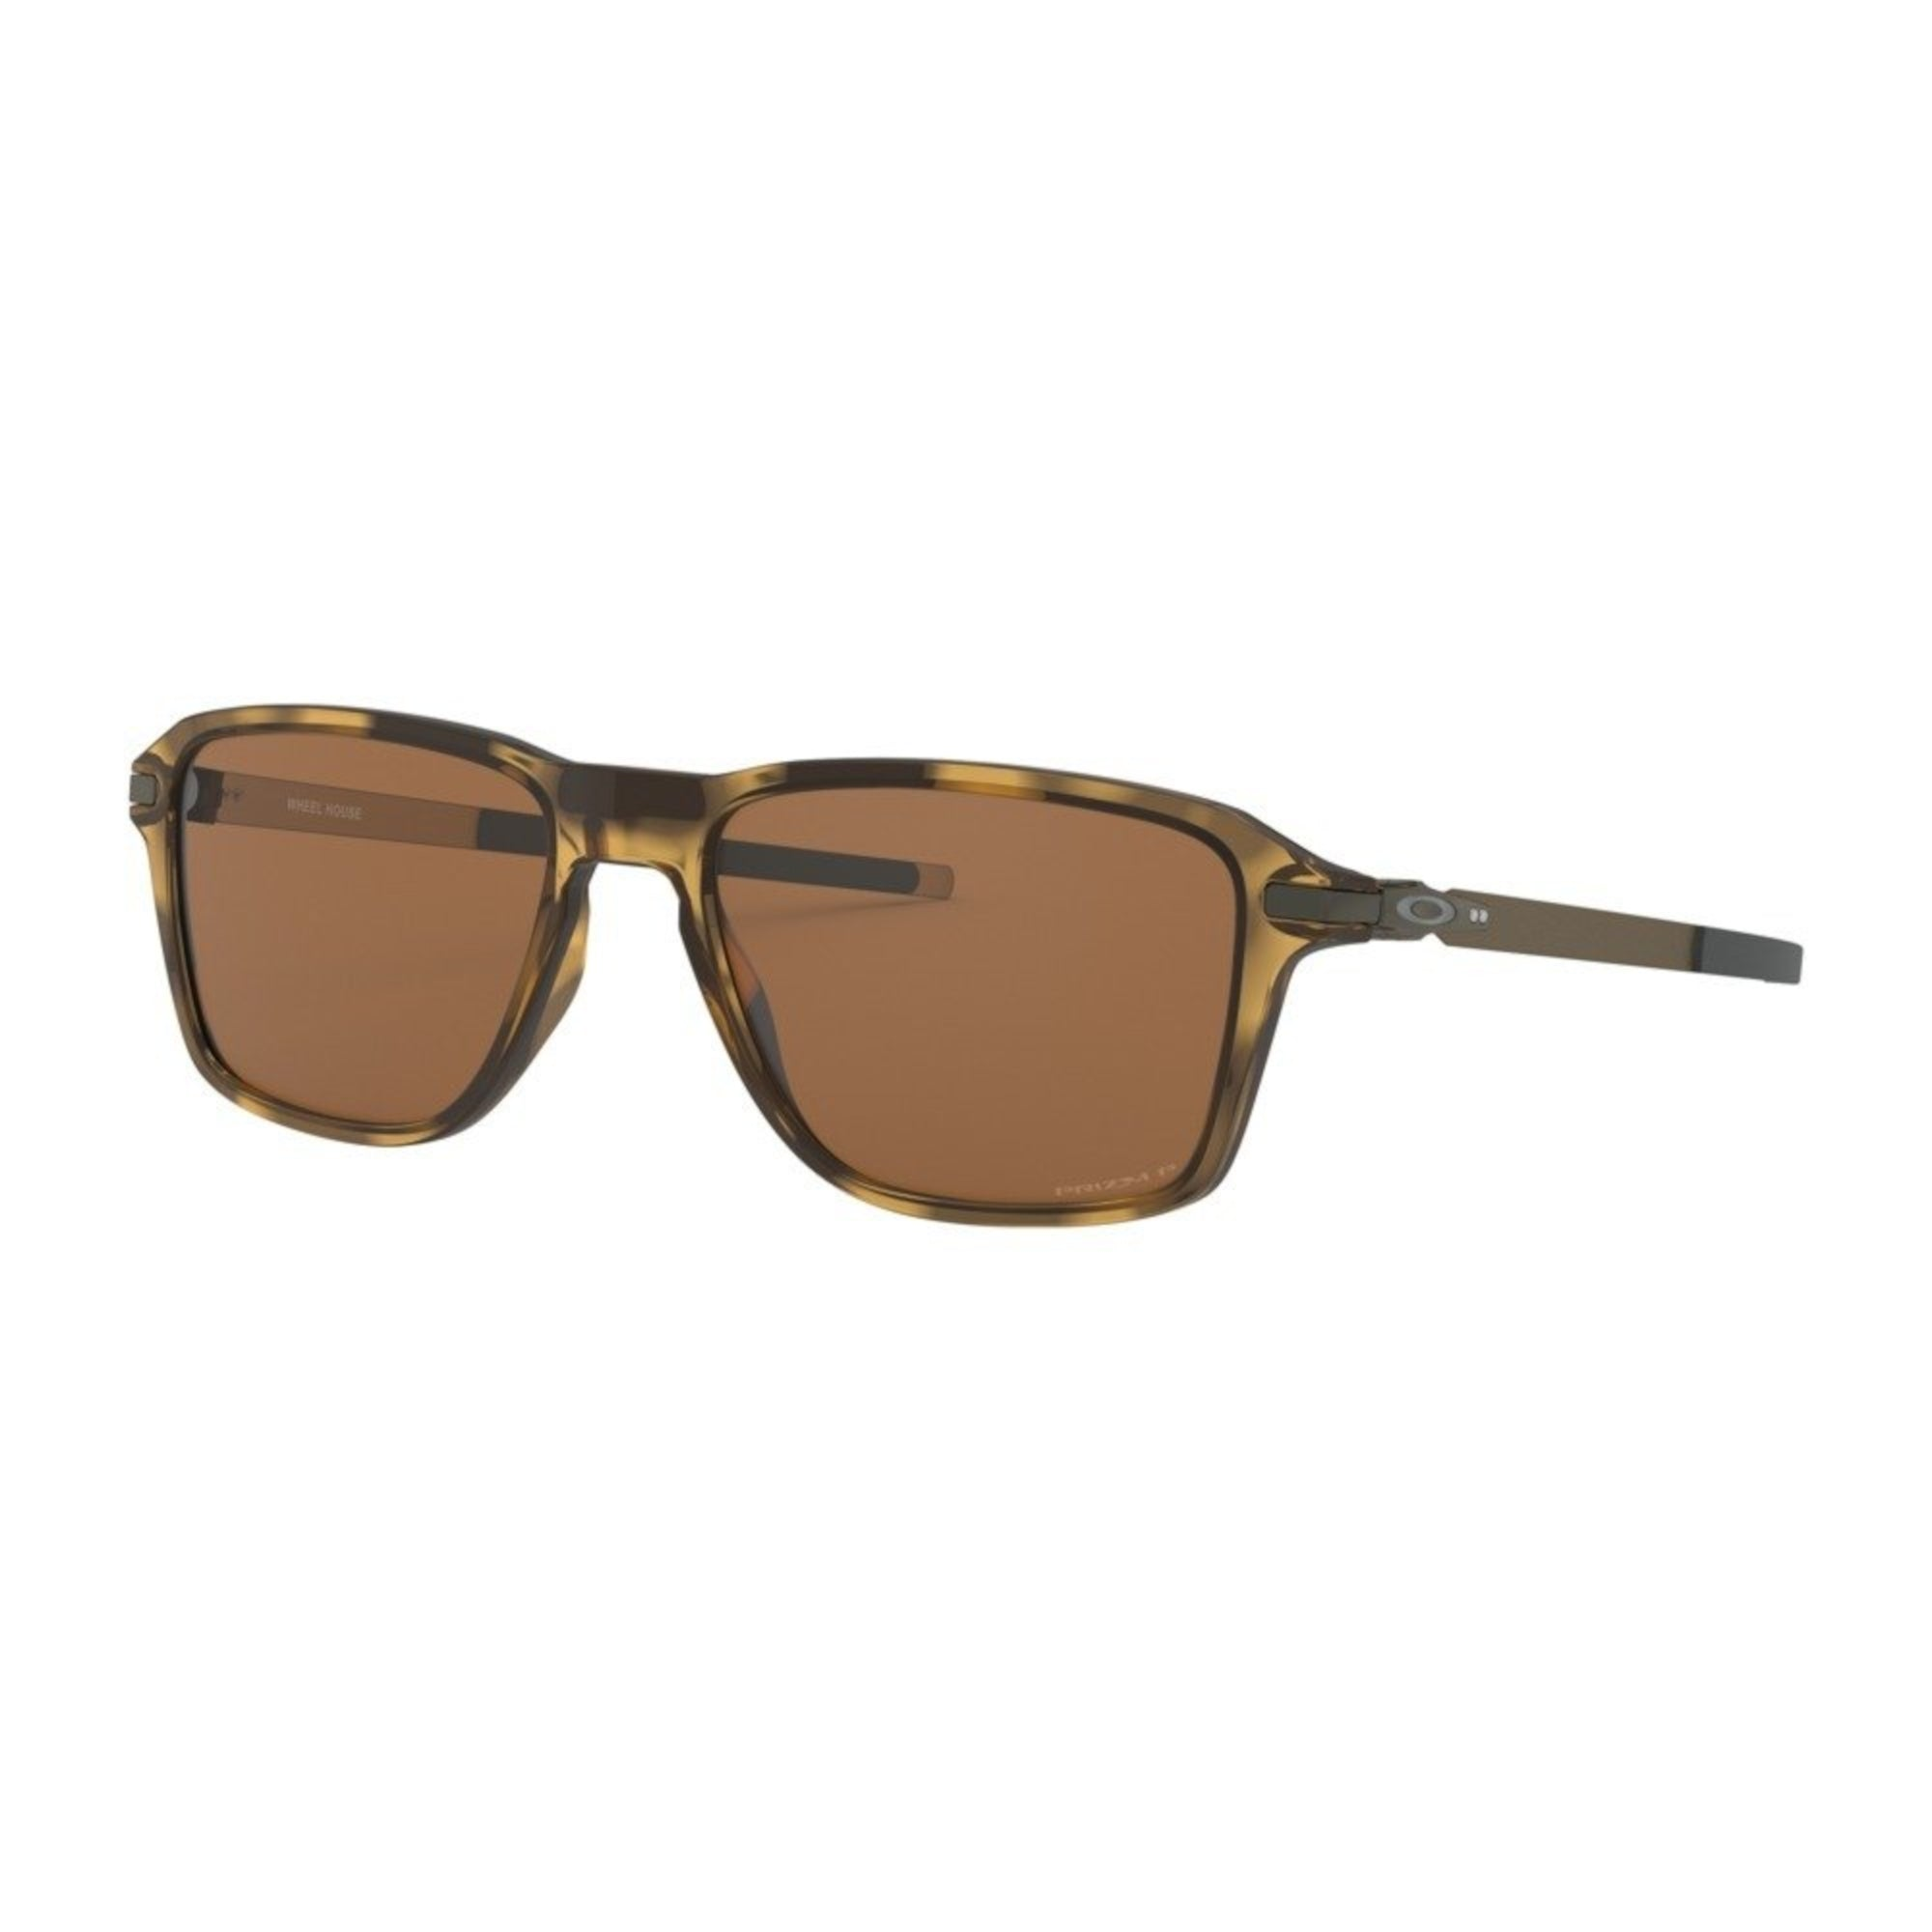 Oakley Wheel House Men's Sunglasses - Polished Tortoise Frame/Prizm Tungsten Lens